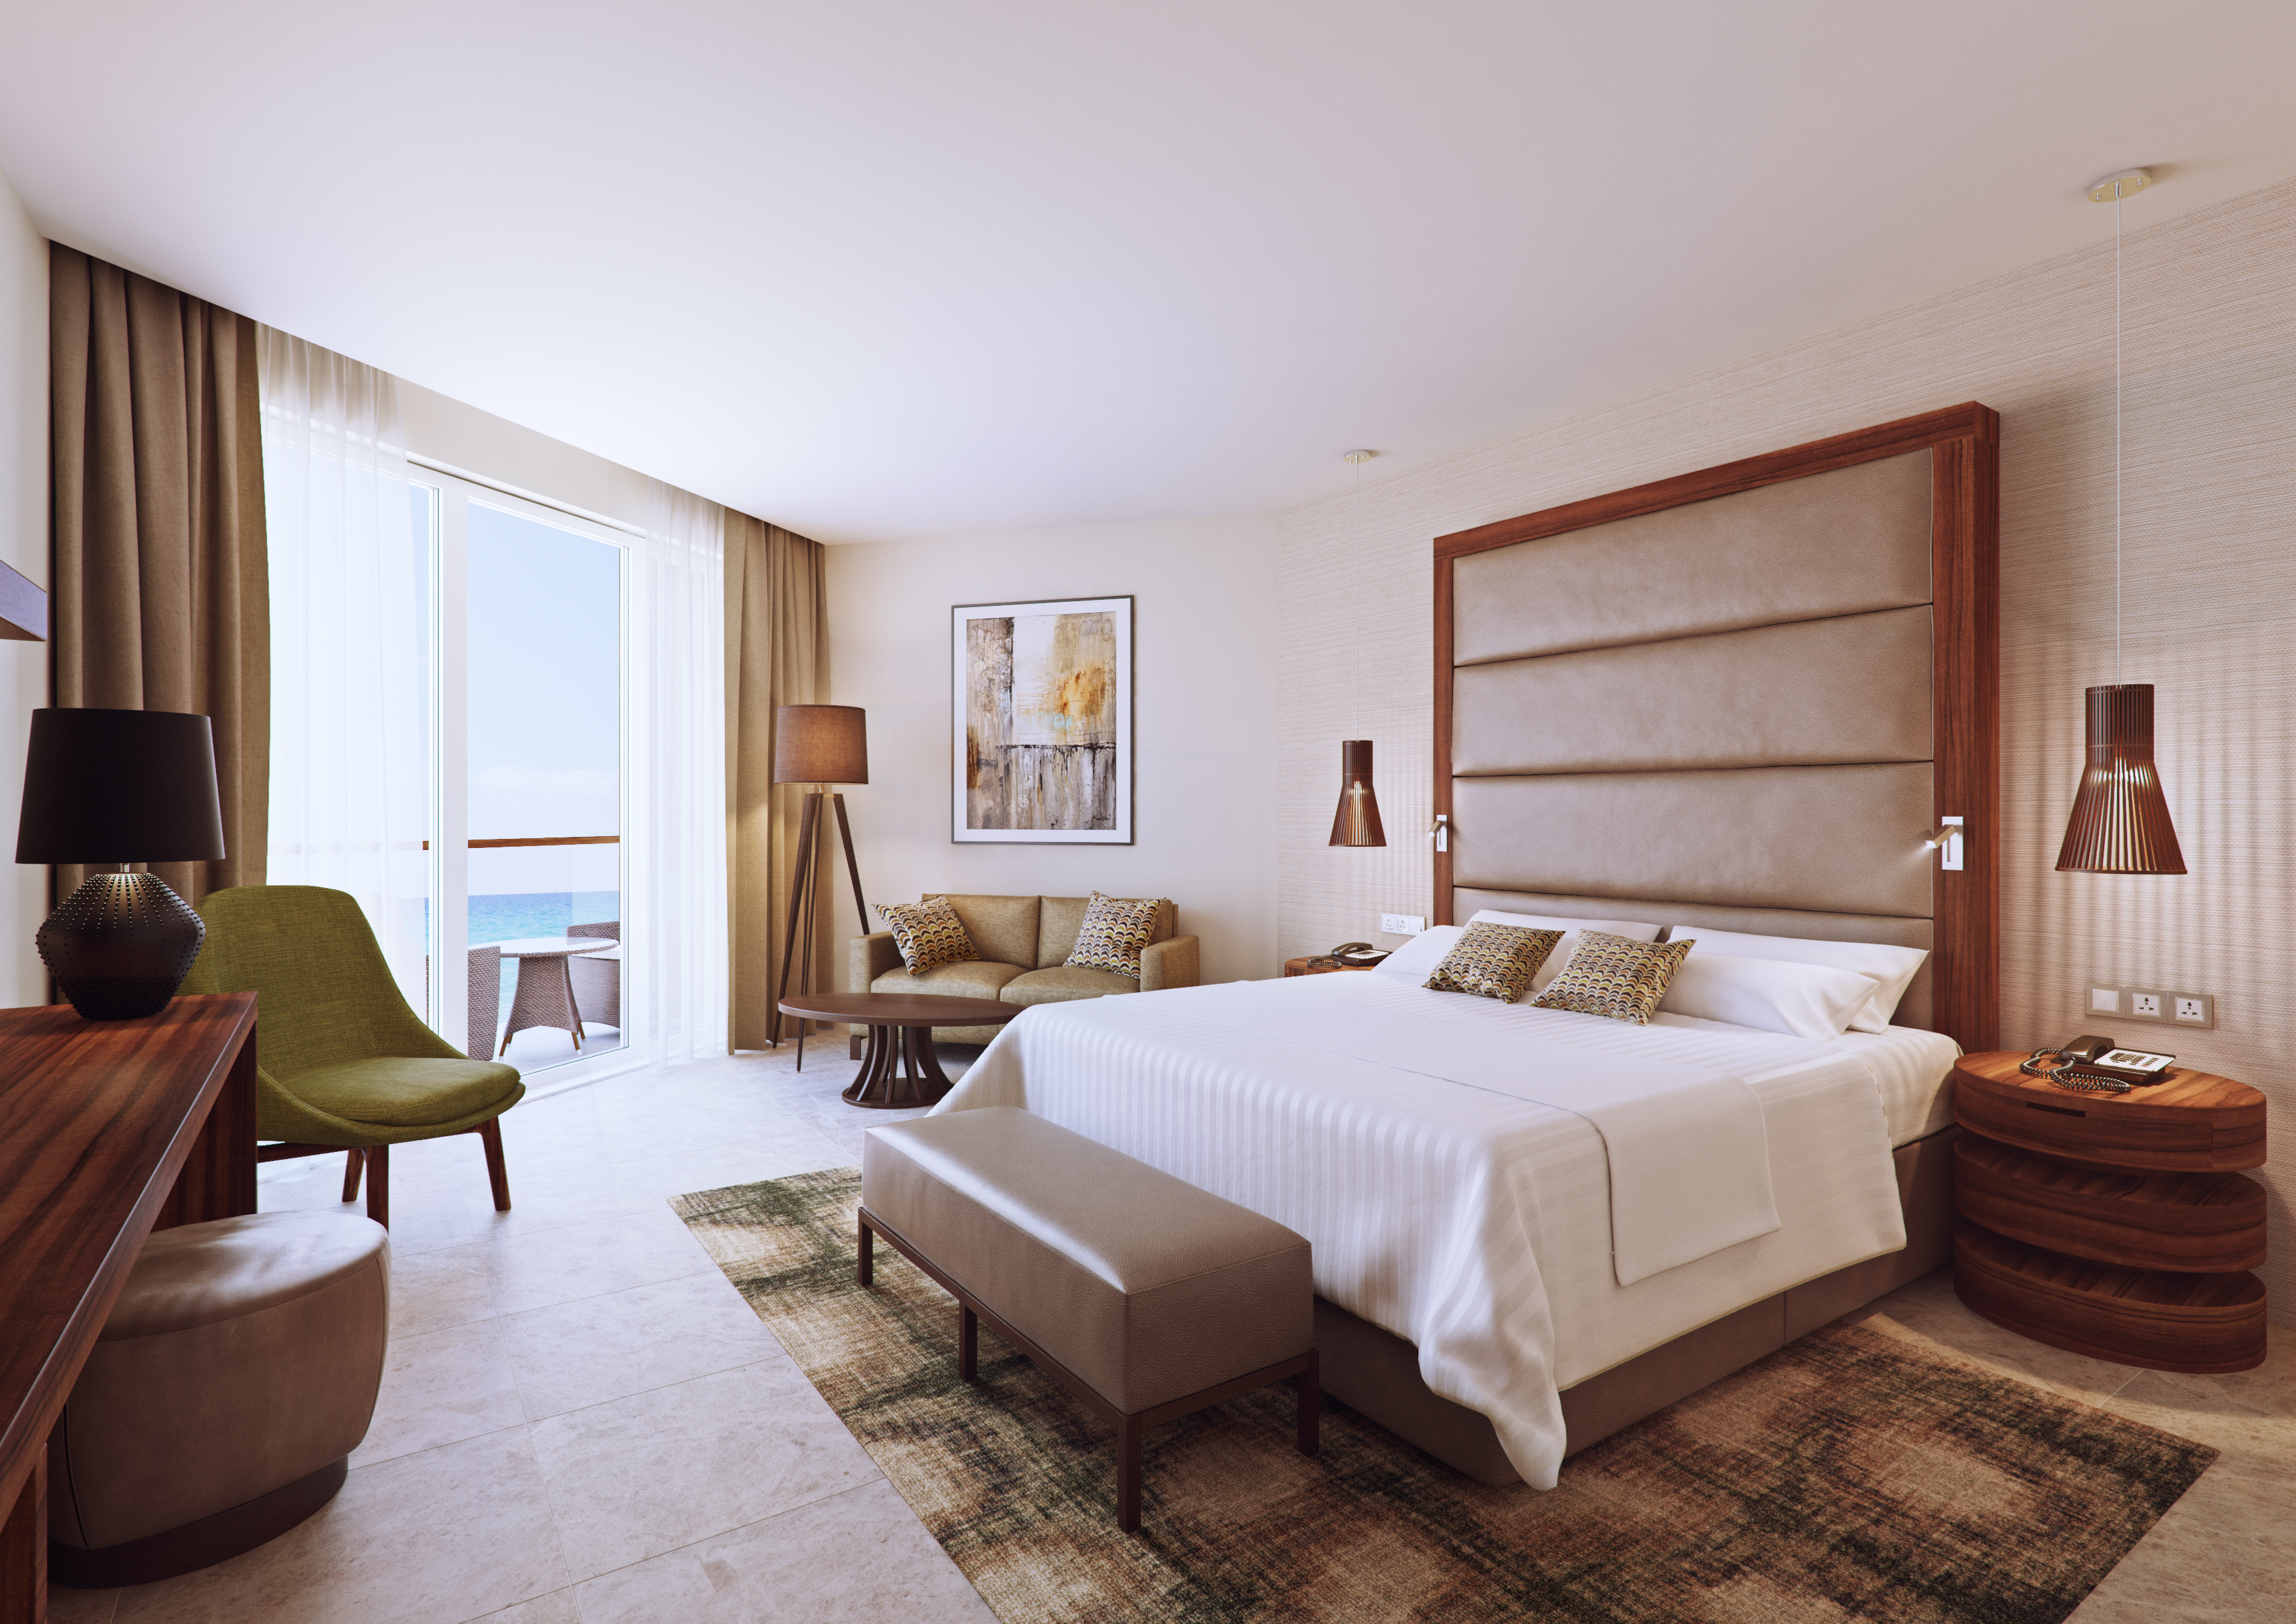 John duffy design group with g1 architects design marriott for Hotel design group